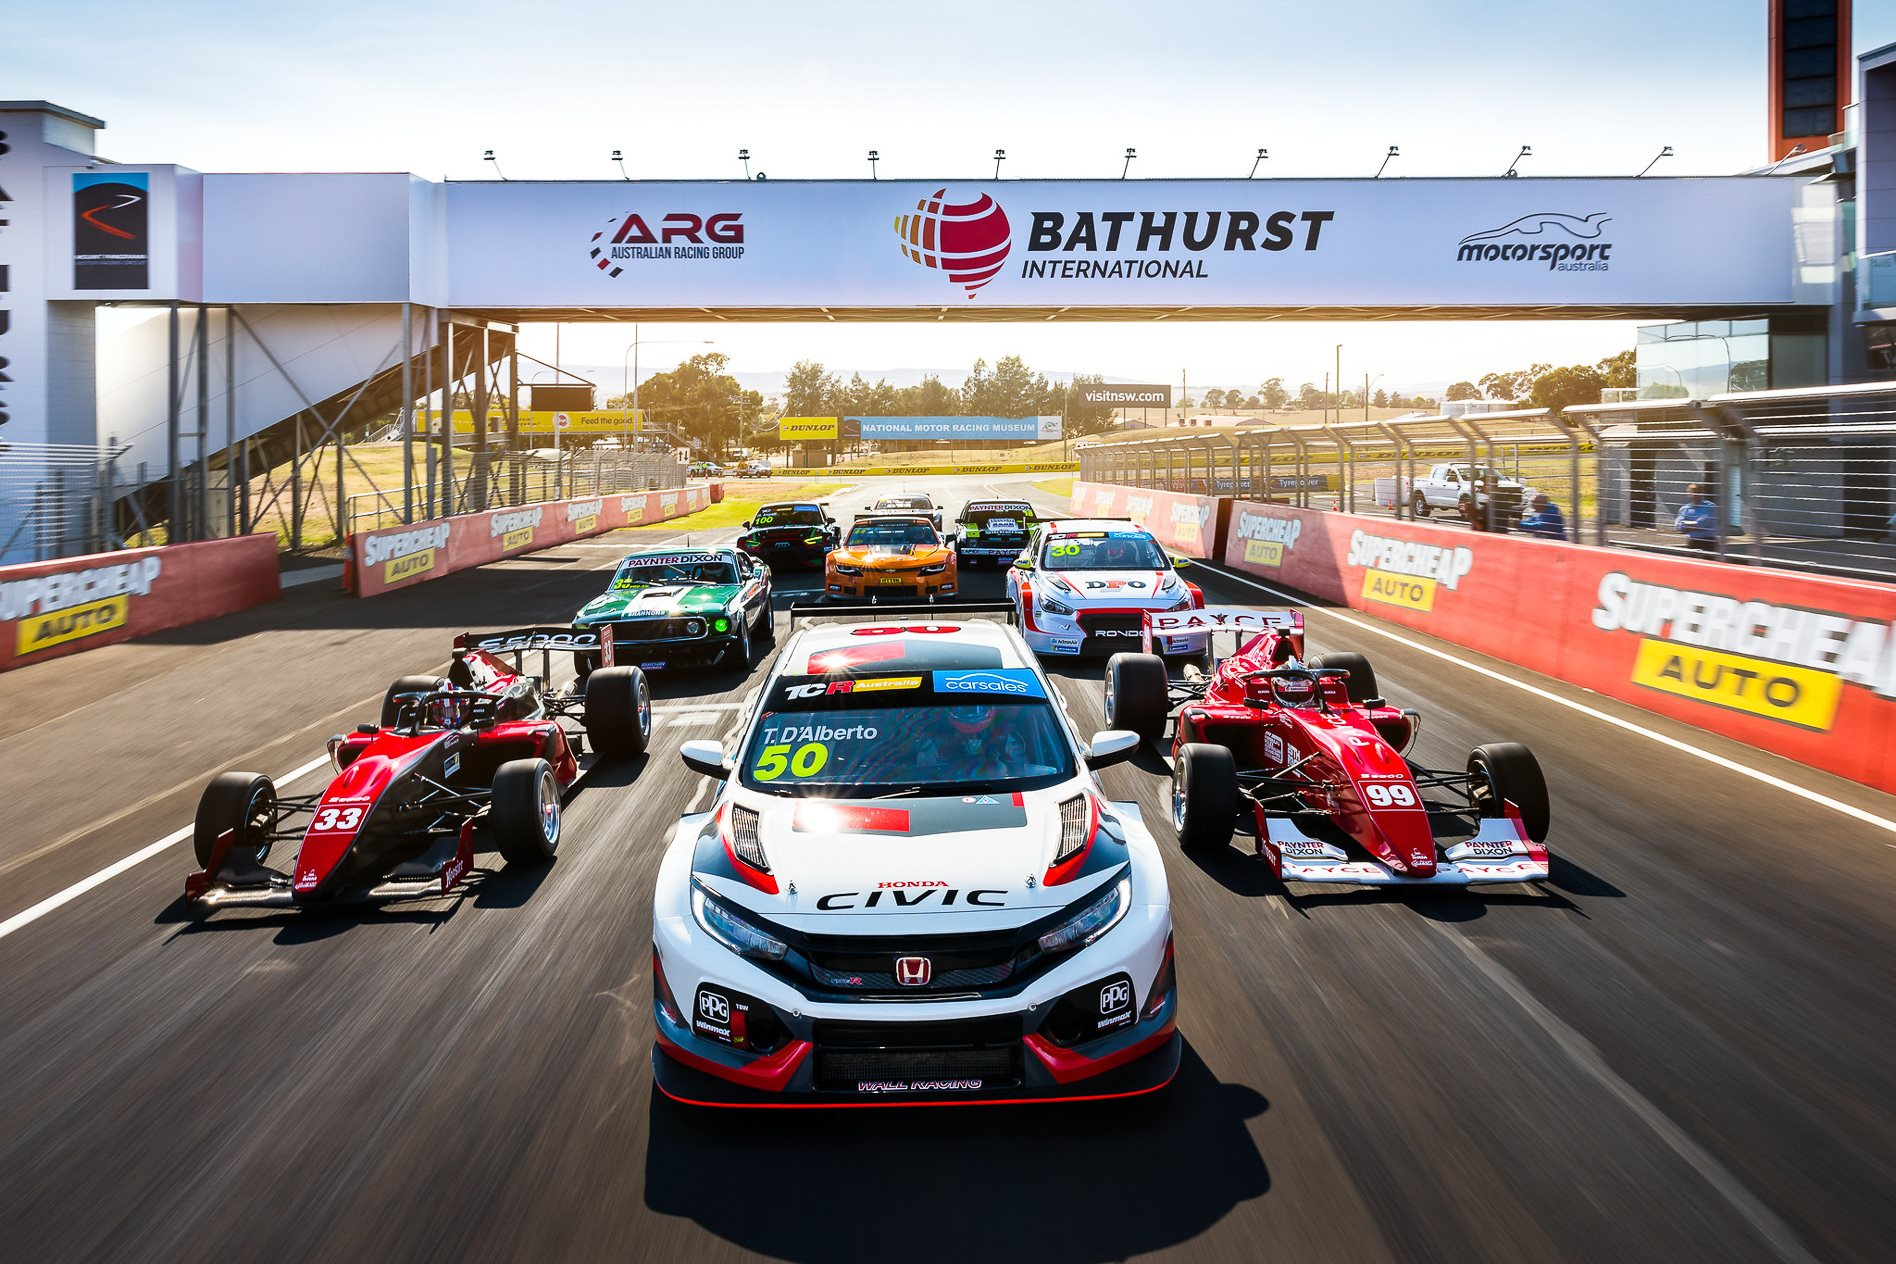 Bathurst to host a truly amazing race in 2020